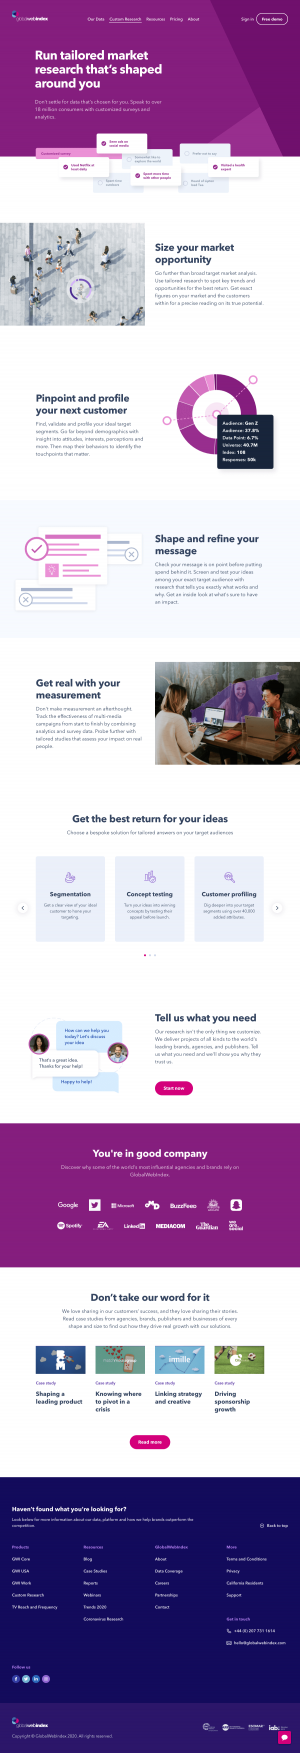 GlobalWebIndex – Features page